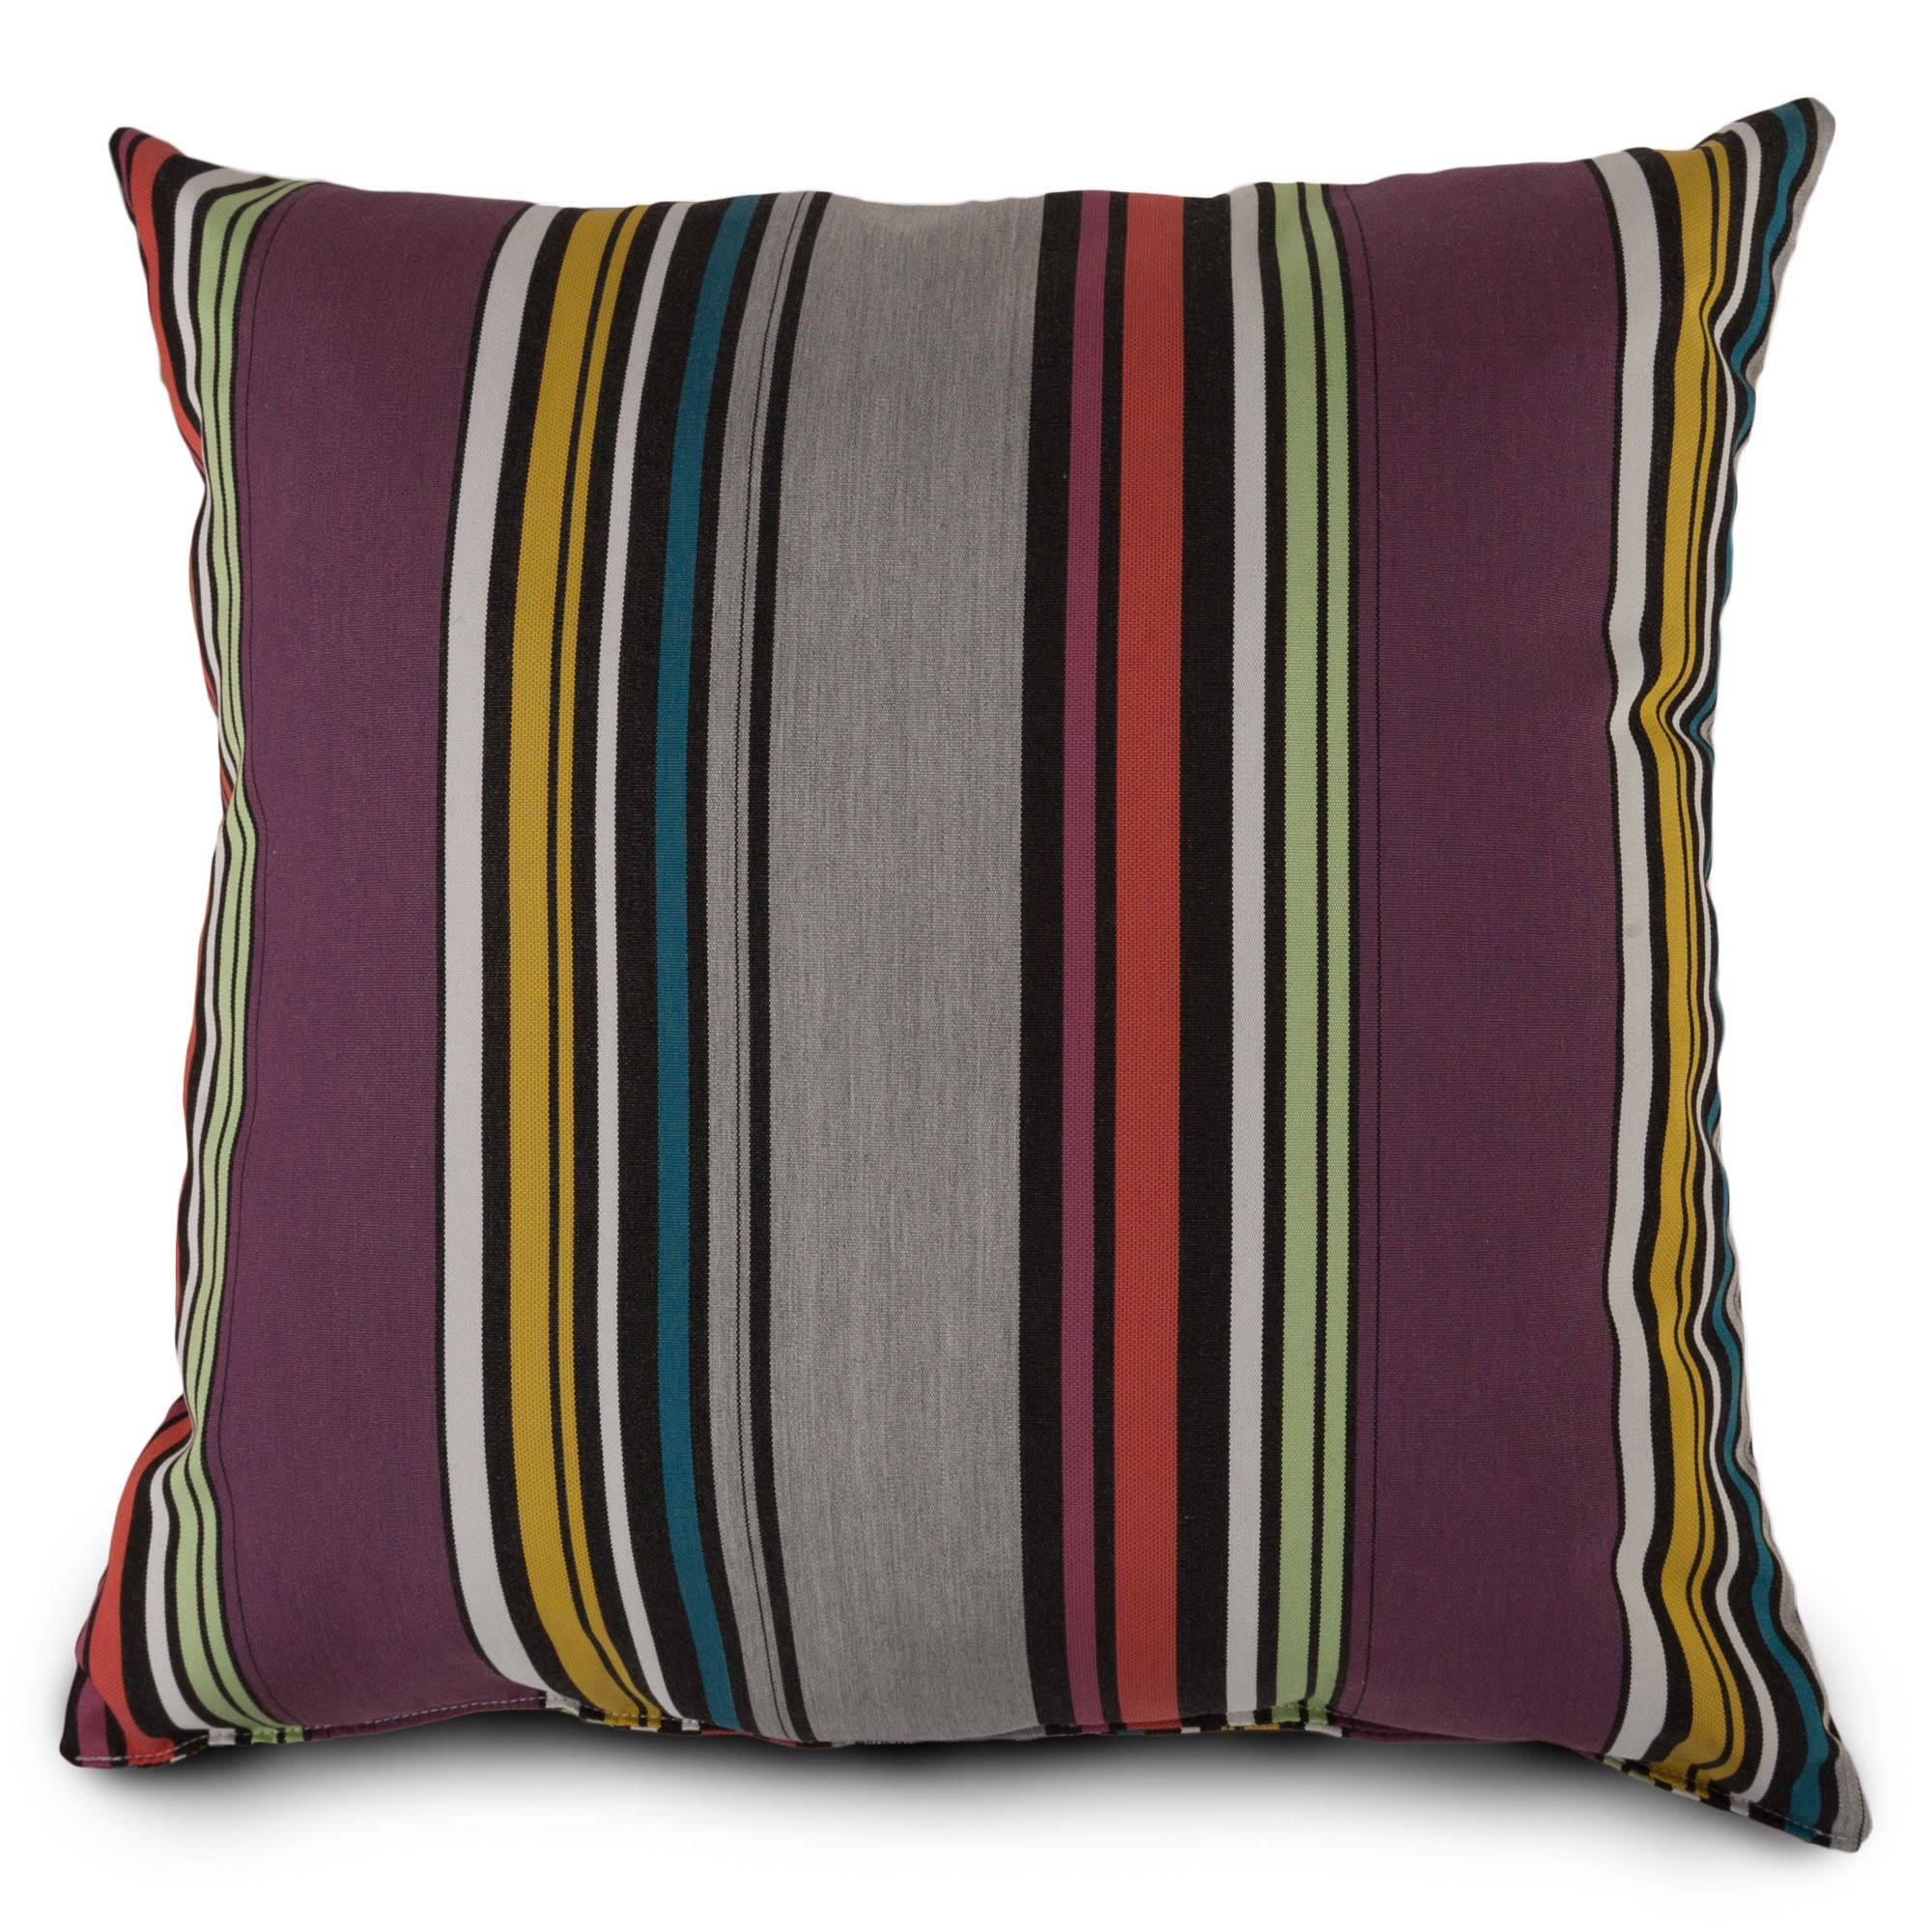 Sunbrella Throw Pillows Clearance : Icon Mystique Sunbrella Outdoor Pillow DFOHome